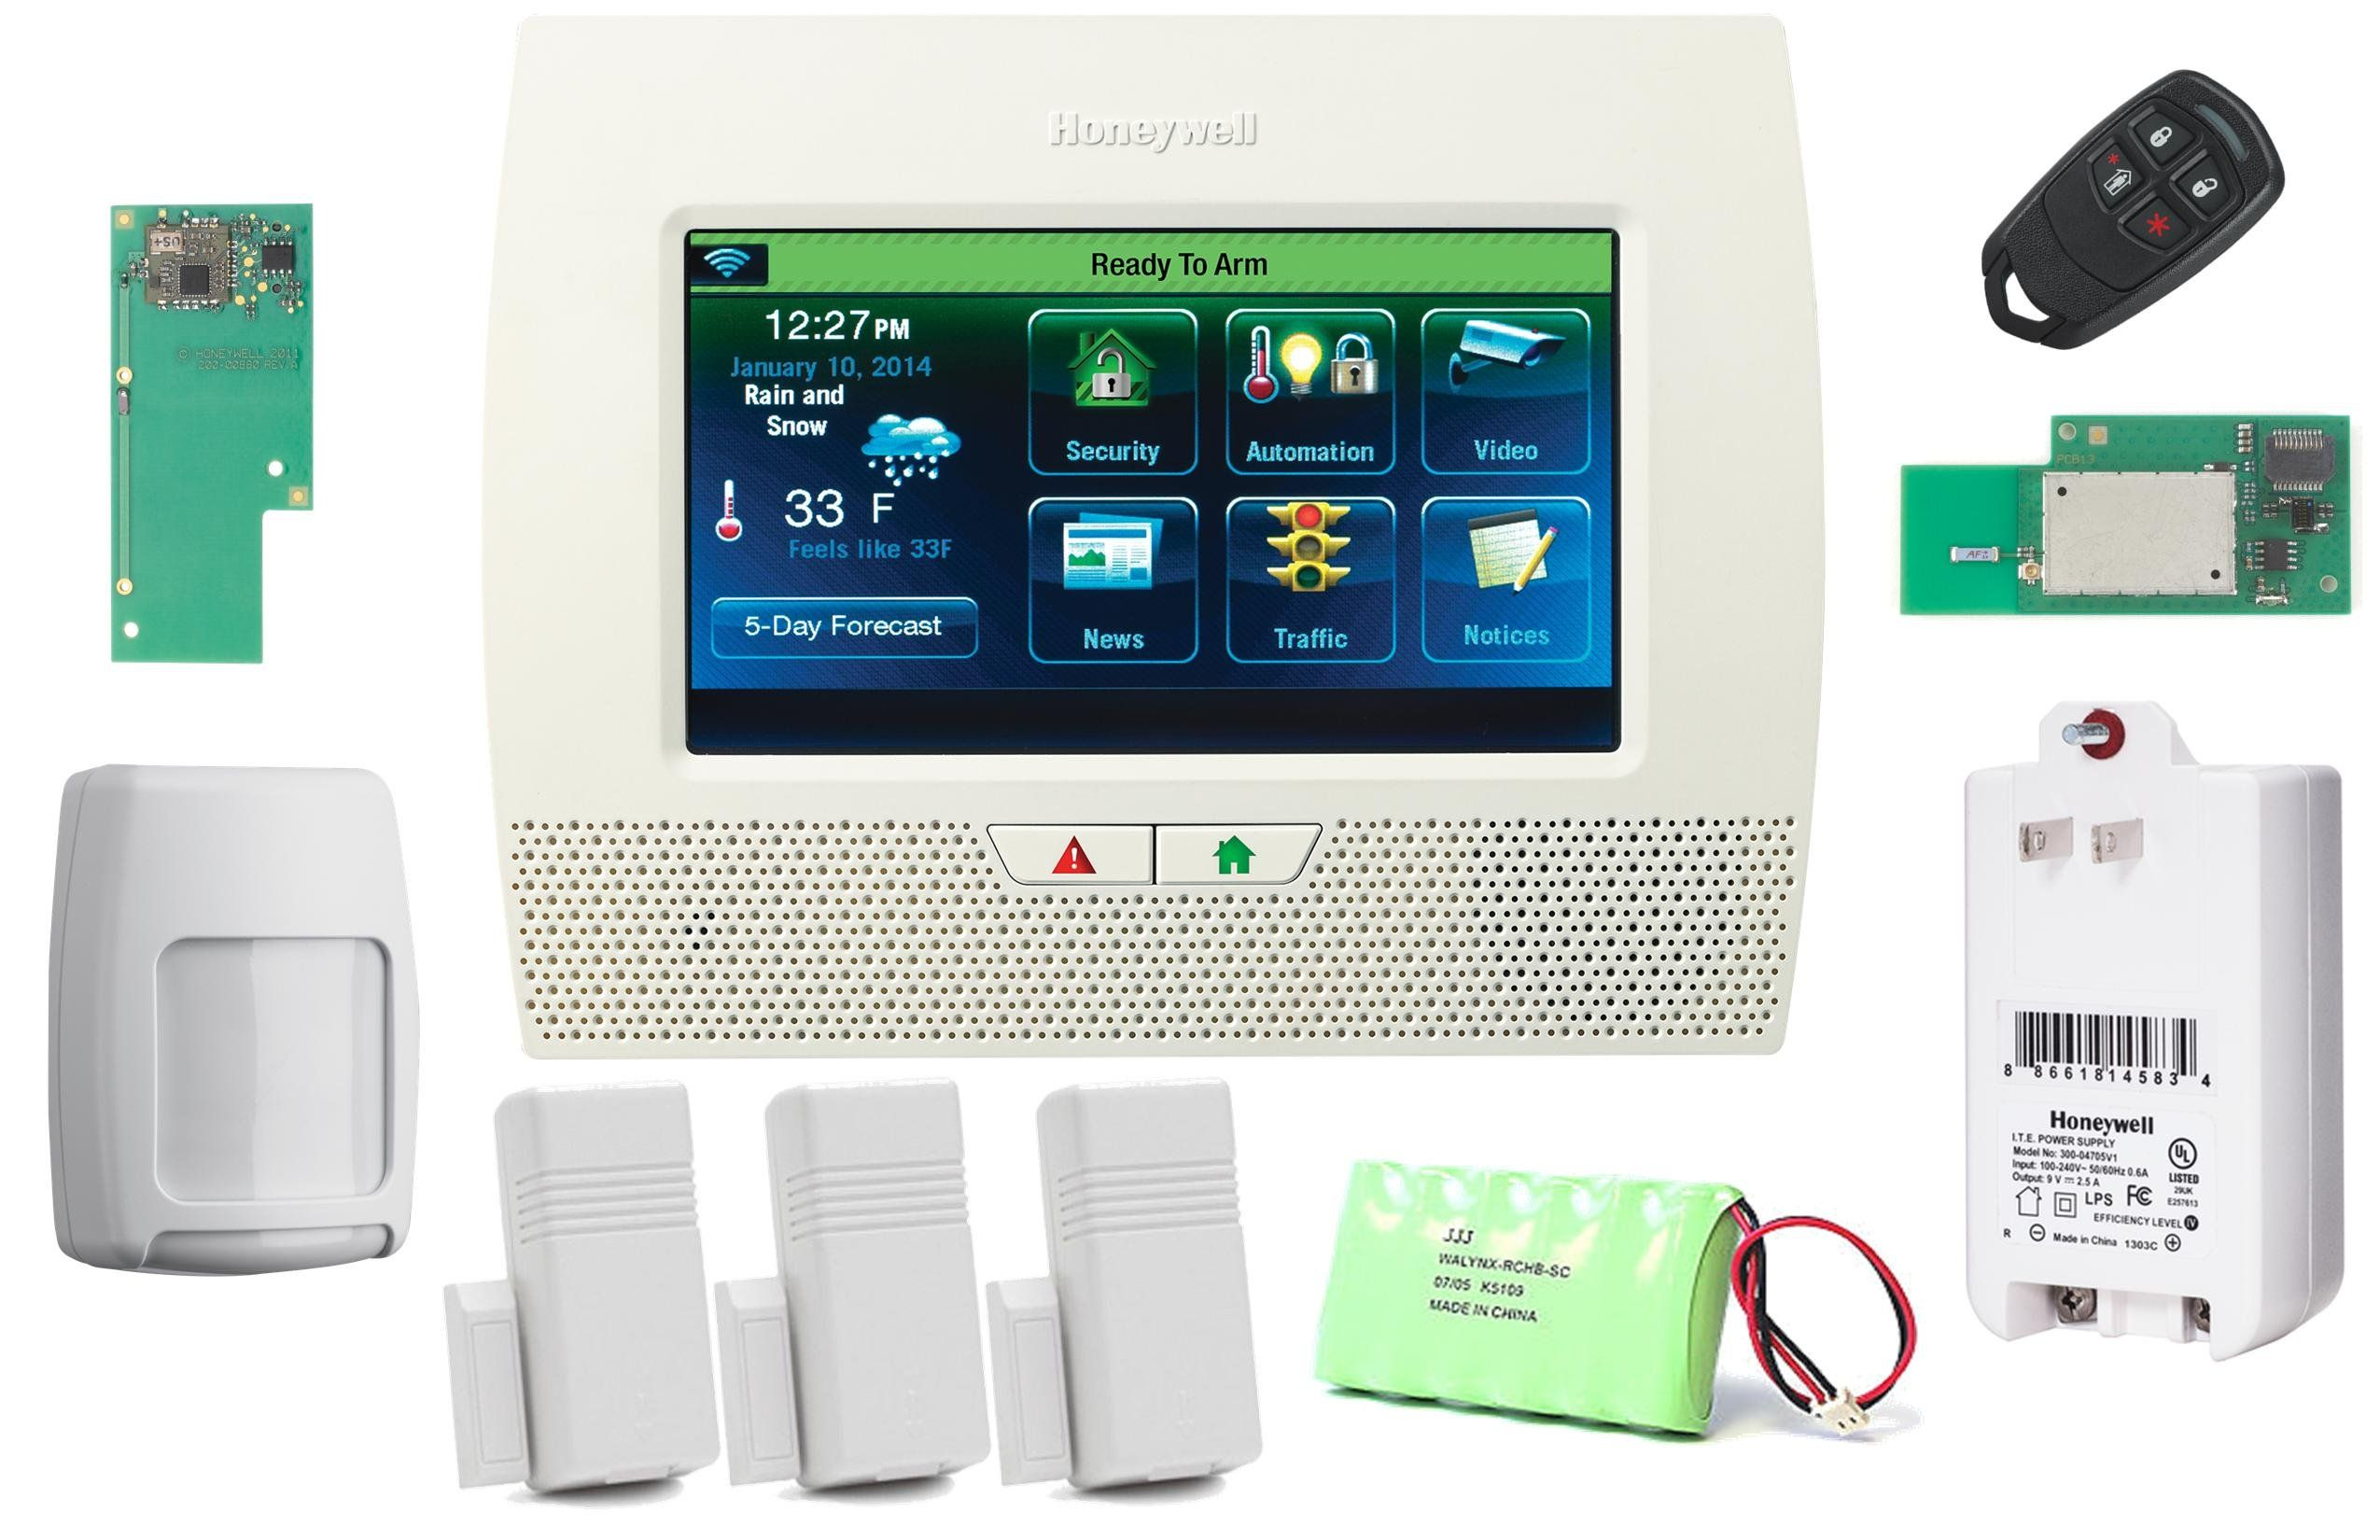 Do it yourself home alarm systems awesome diy home security systems elegant honeywell wireless lynx touch home alarm kit with wifi zwave and gsm module see this awesome image diy do it yourself today with do it yourself home solutioingenieria Gallery